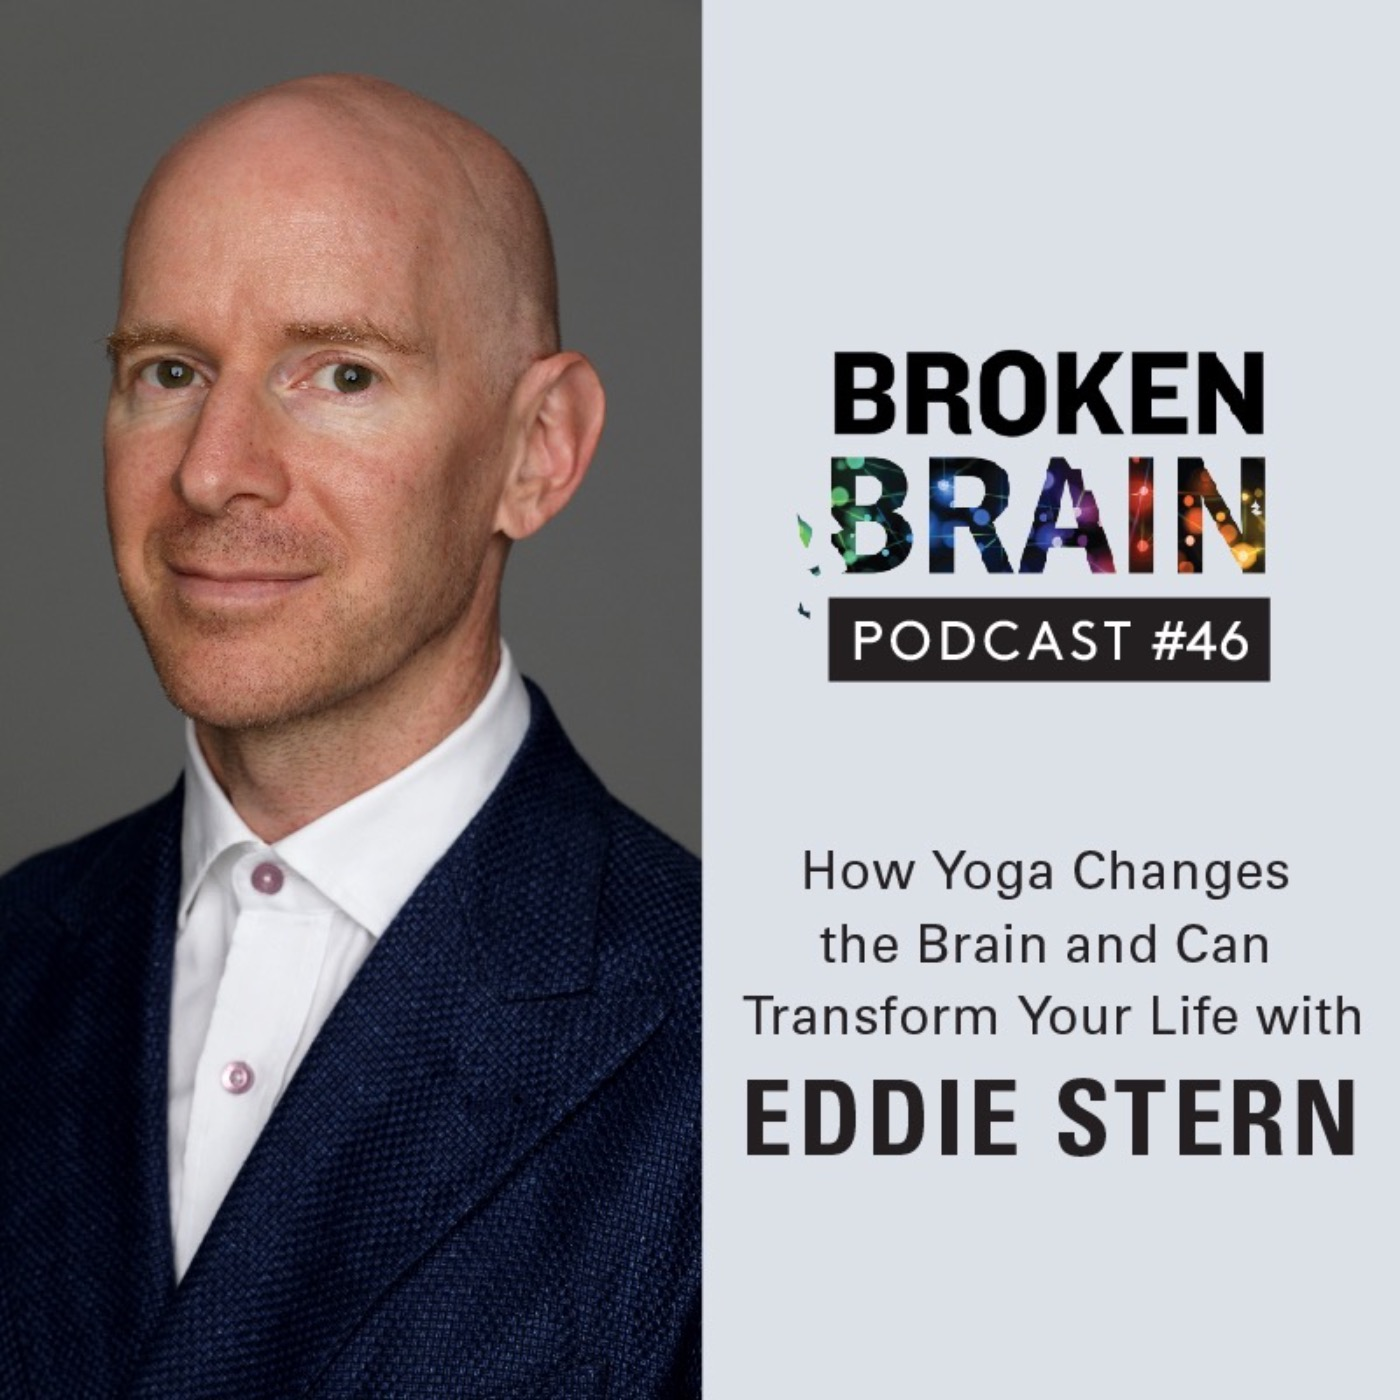 #46: How Yoga Changes the Brain and Can Transform Your Life with Eddie Stern